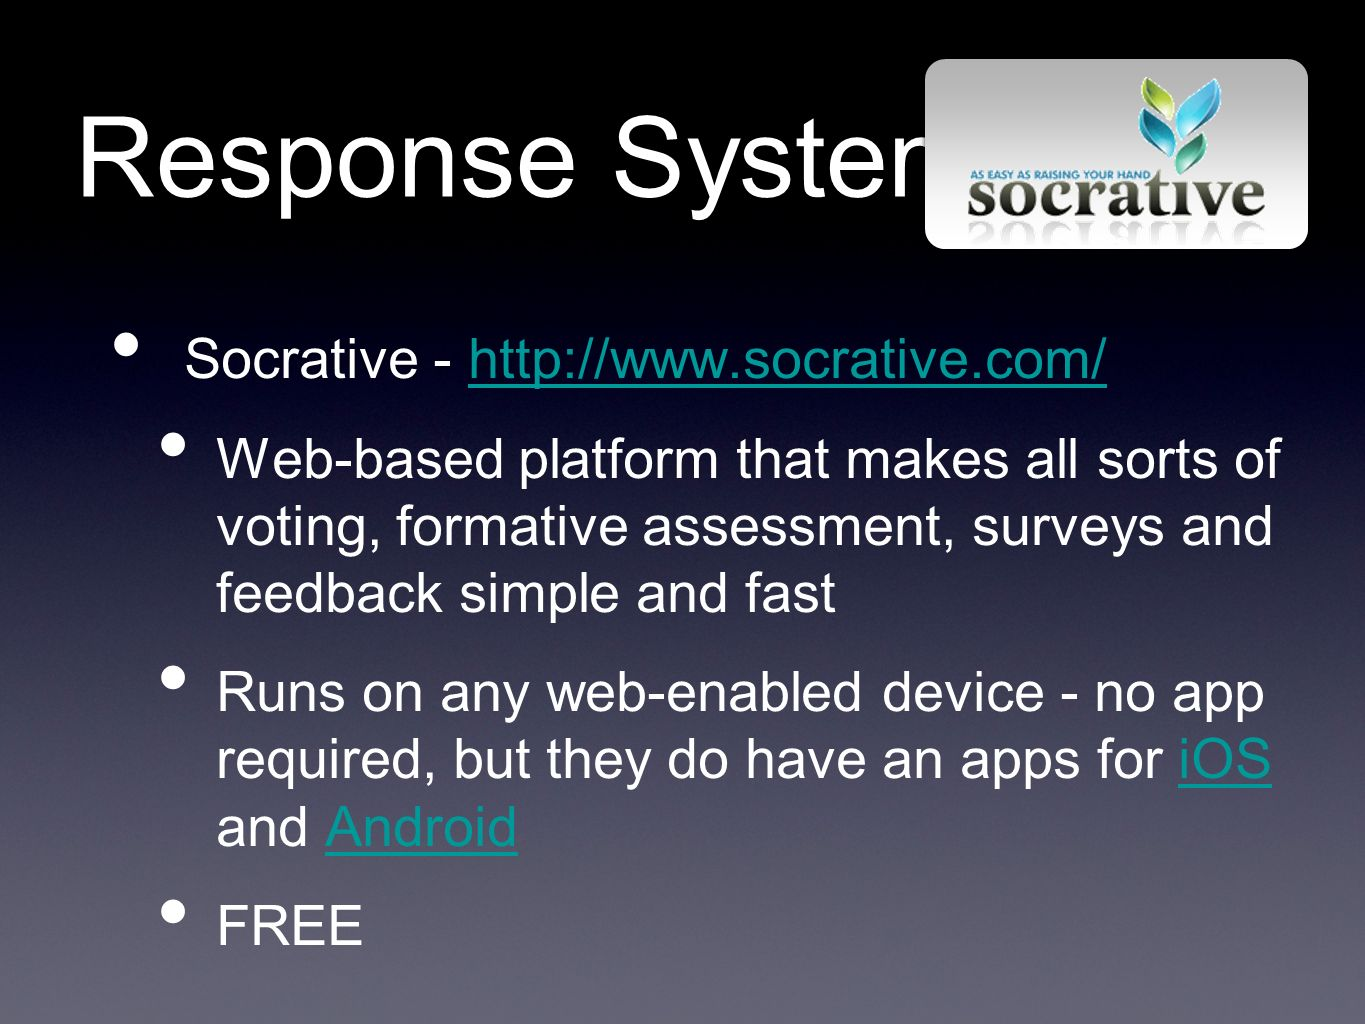 Response Systems Socrative - http://www.socrative.com/http://www.socrative.com/ Web-based platform that makes all sorts of voting, formative assessment, surveys and feedback simple and fast Runs on any web-enabled device - no app required, but they do have an apps for iOS and AndroidiOSAndroid FREE